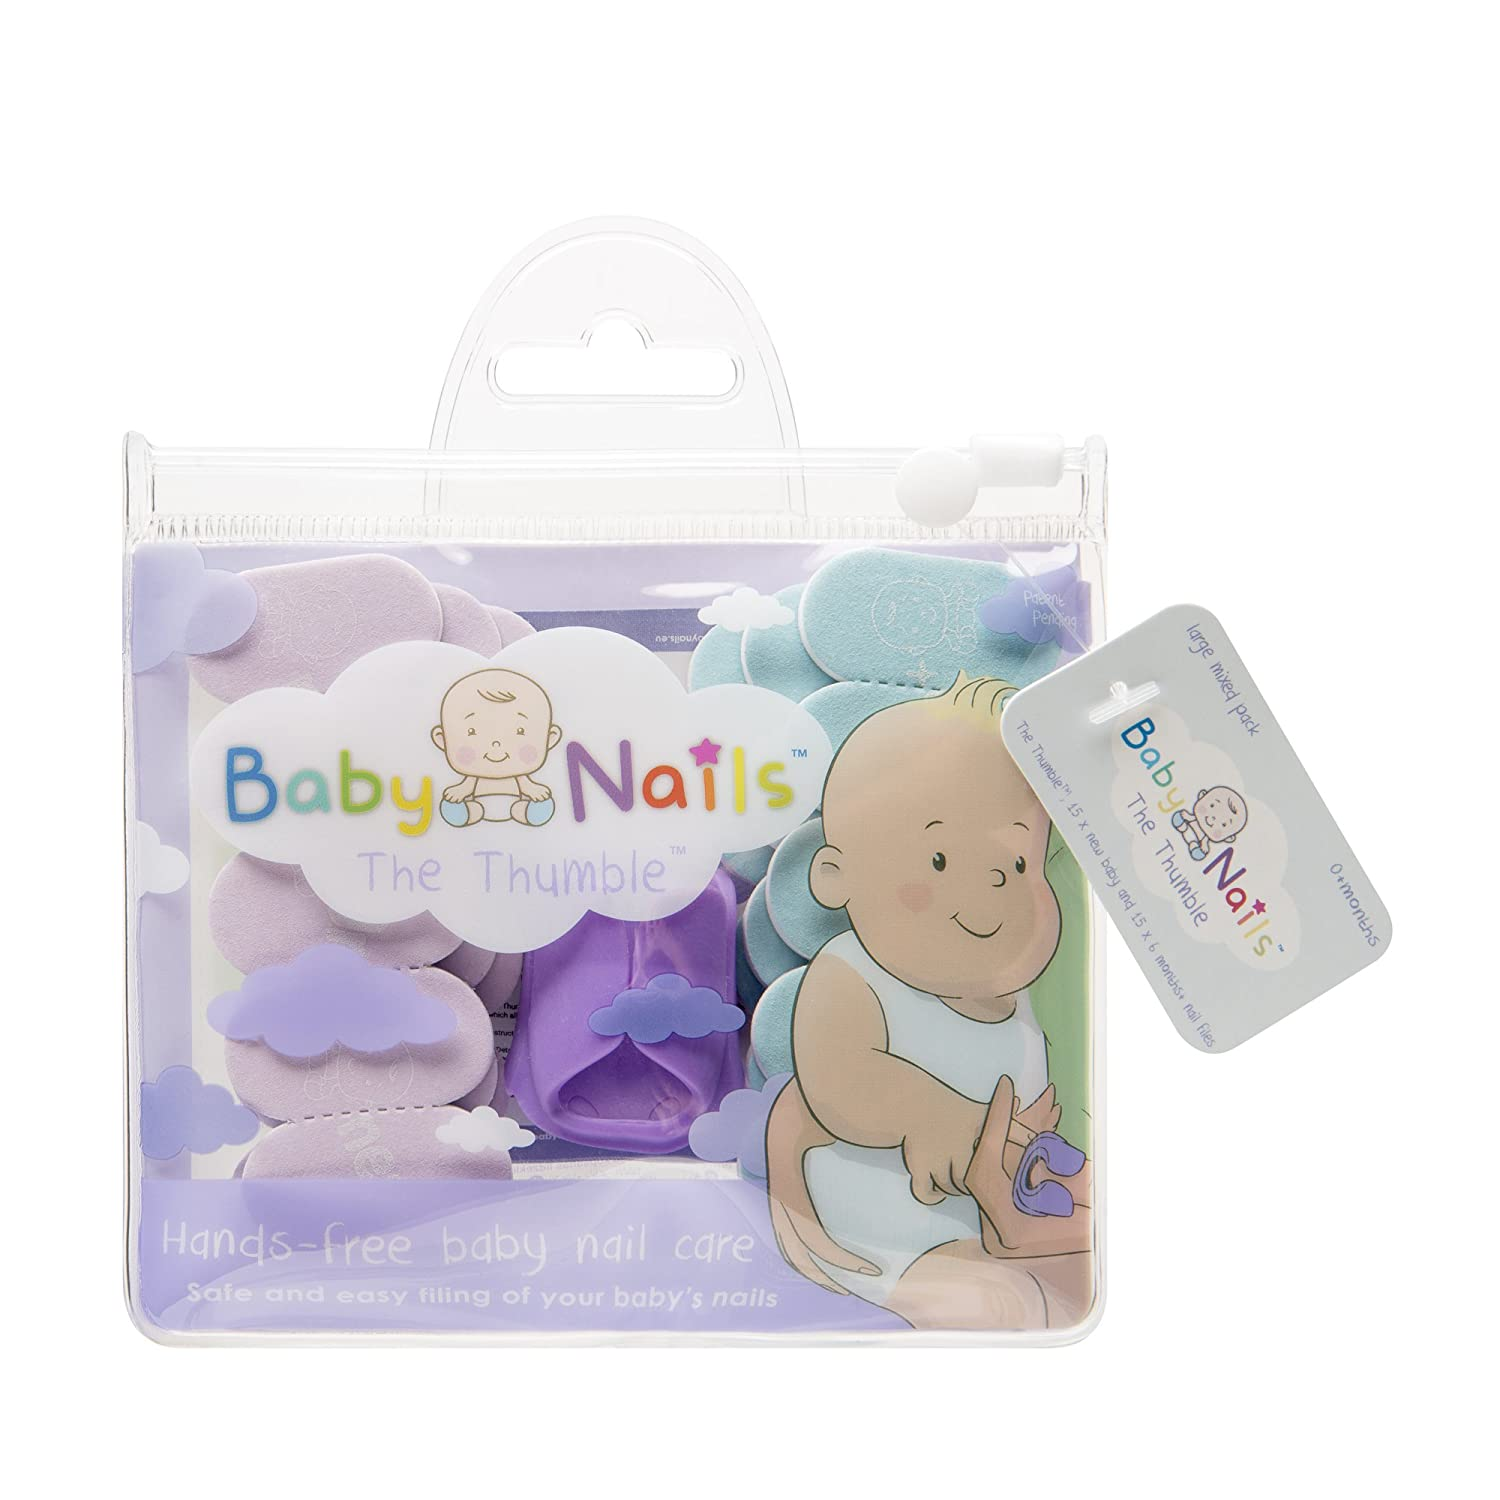 Baby Nails Unisex Nail Care NAILS001 NEWBABY-STDPACK